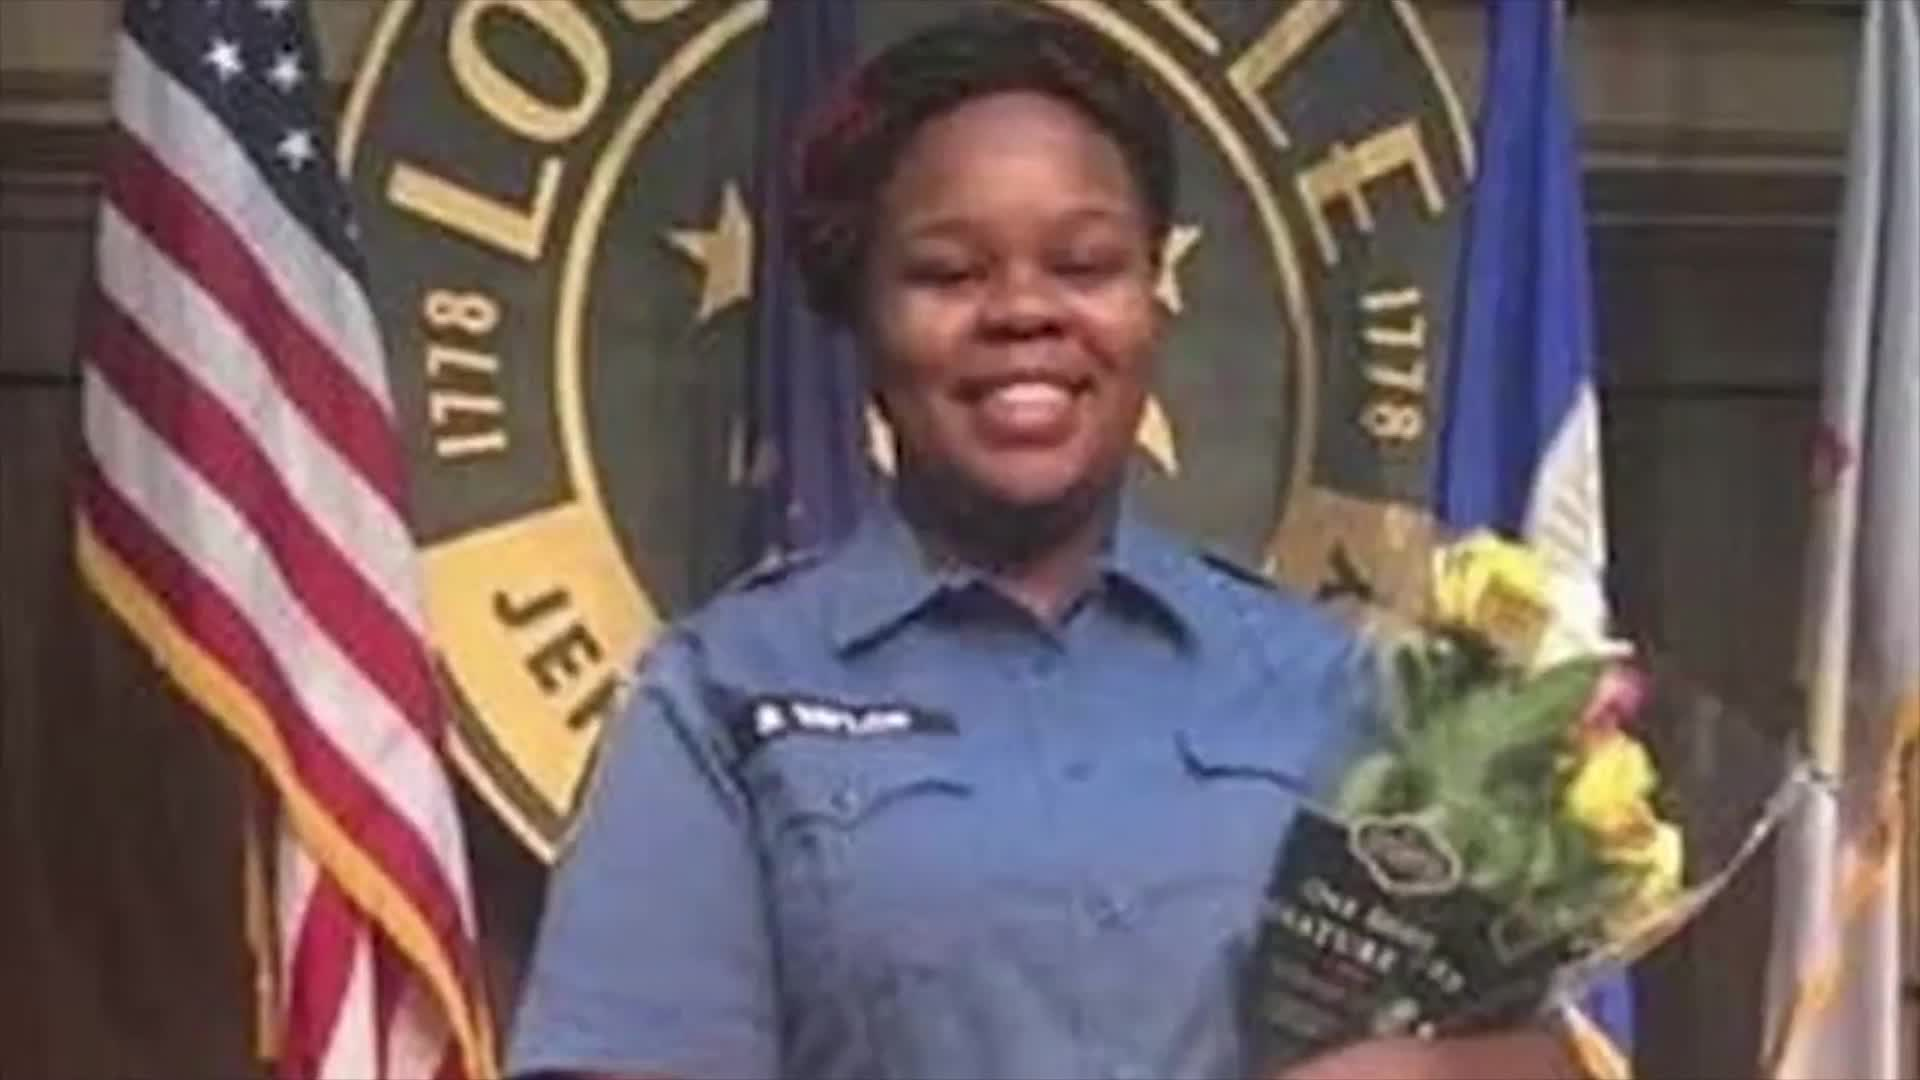 Breonna Taylor is shown in a photo posted to Change.org and distributed by CNN.